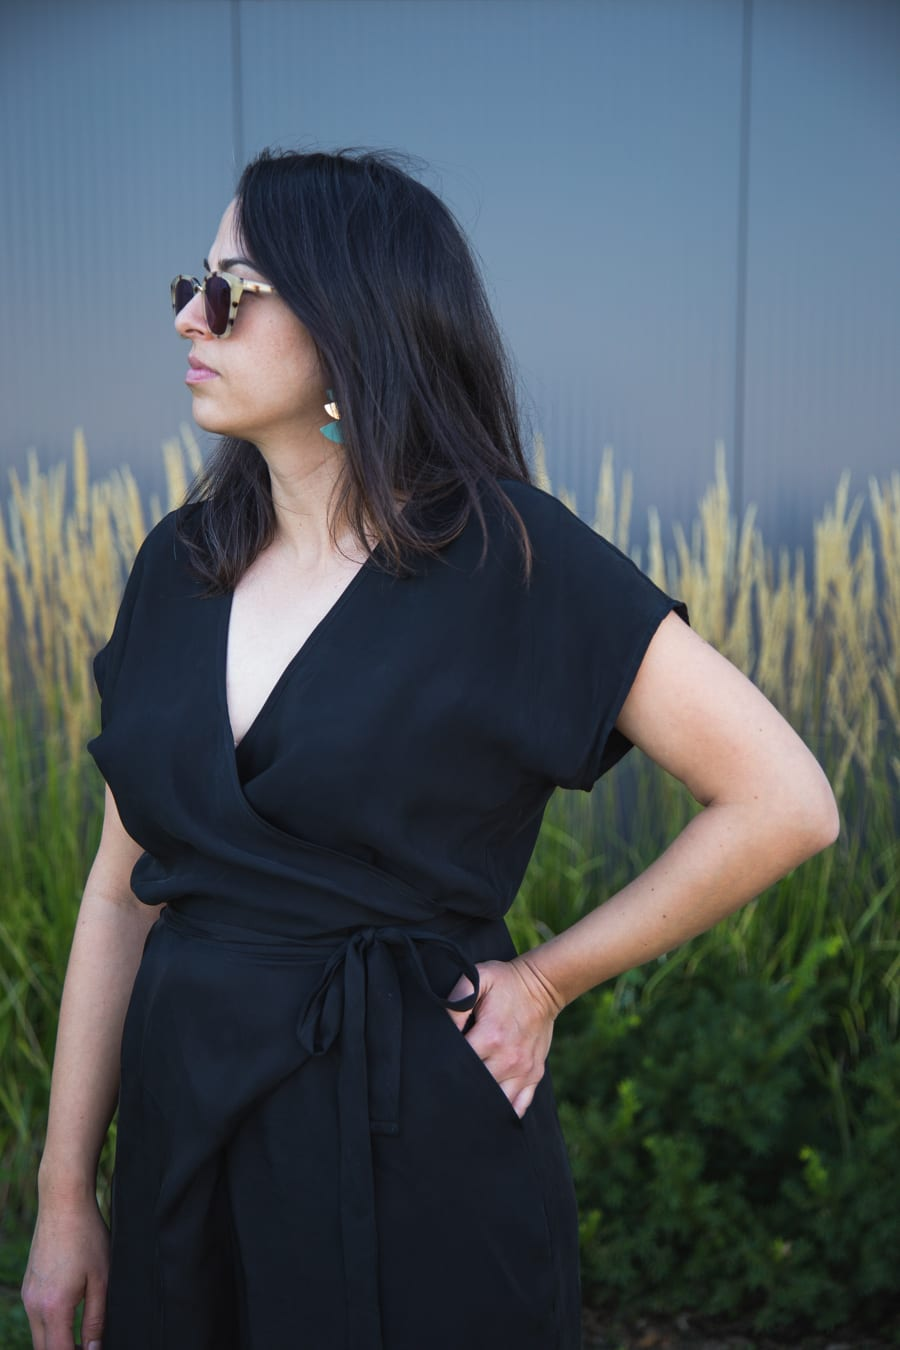 Zadie Jumpsuit by Paper Theory in black cupro // Handmade by Closet Case Patterns